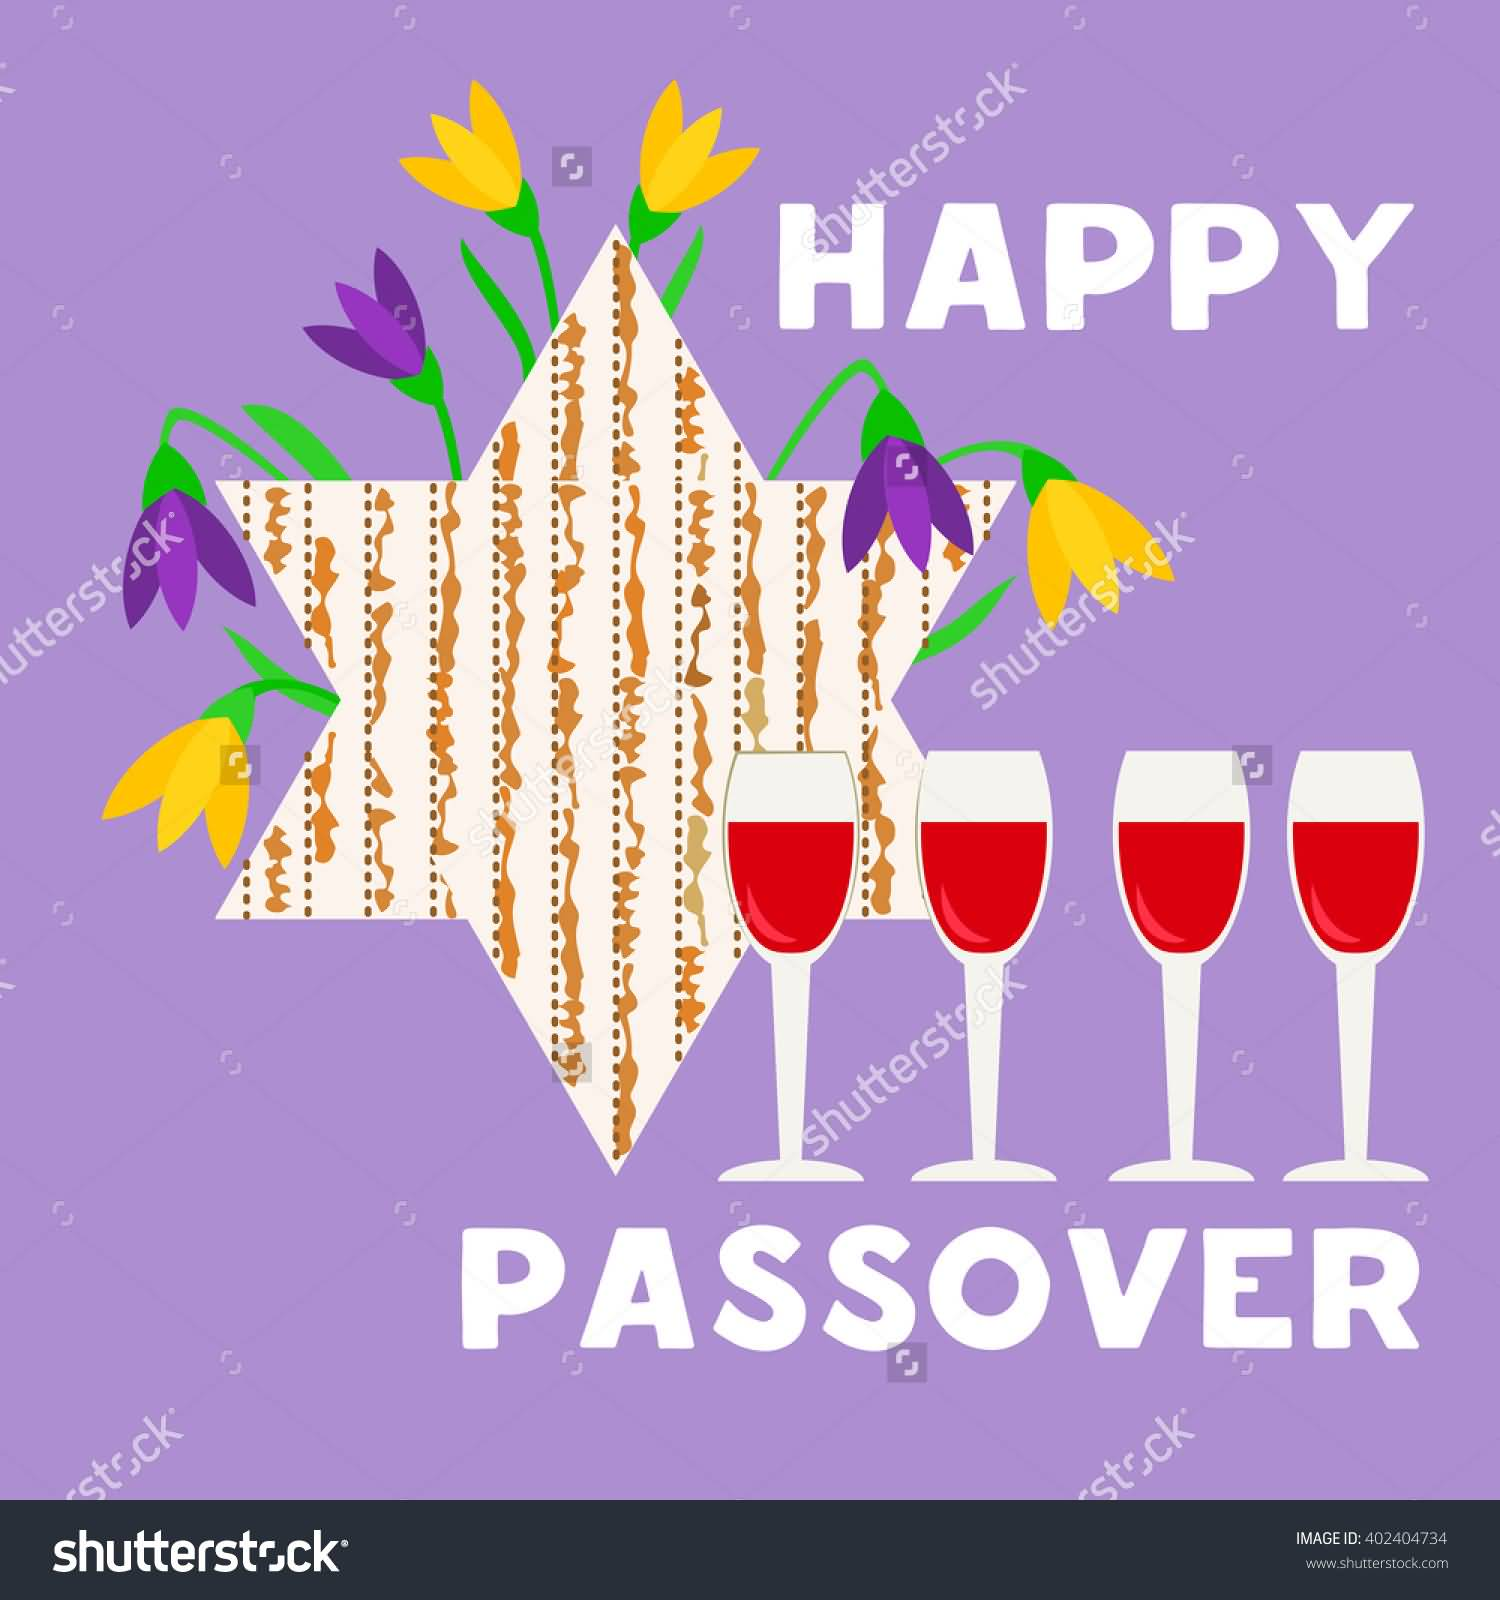 Happy passover wishes passover quotes messages ecards page 25 20 happy passover wishes m4hsunfo